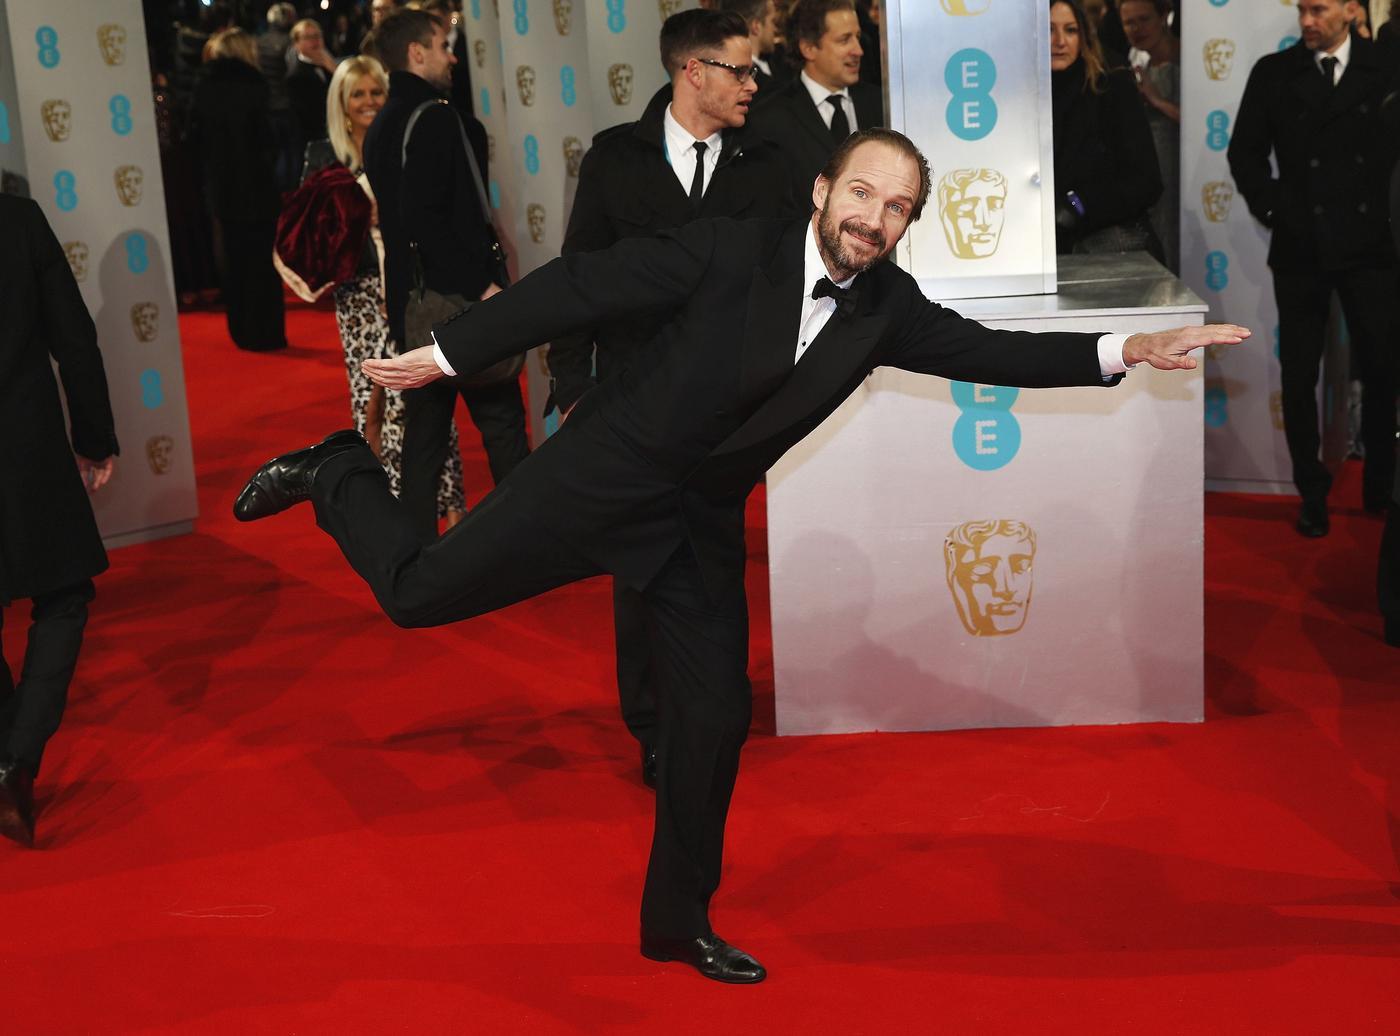 Baftas 2015: The Grand Budapest Hotel cleans up with five gongs – and Ralph Fiennes couldn't be happier